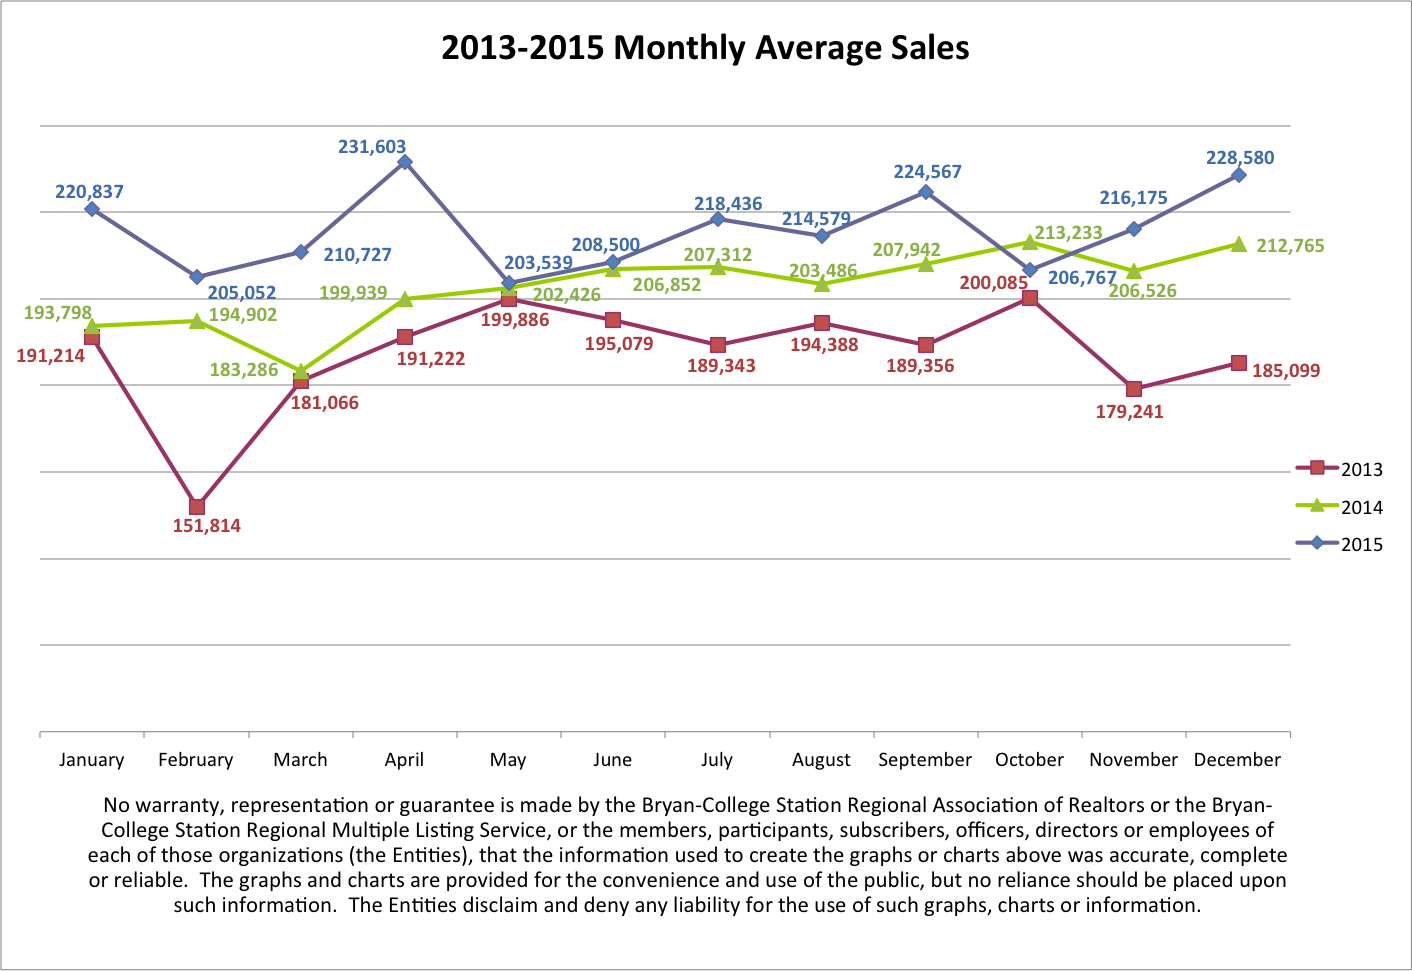 2013-2015 Monthly Average